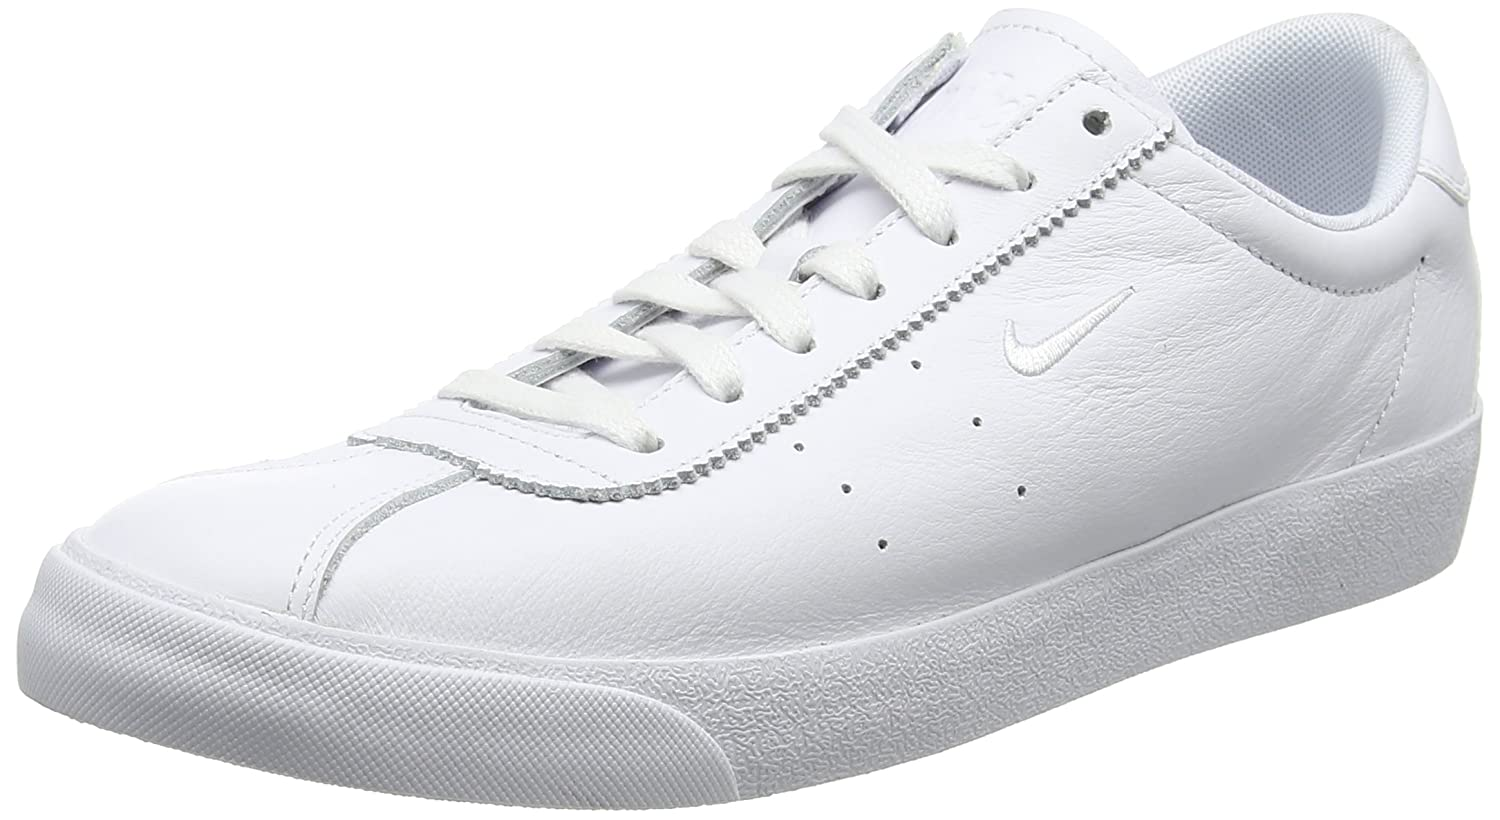 Nike Herren Match Classic Leather Sneaker  42 EU|Wei? (White/White)